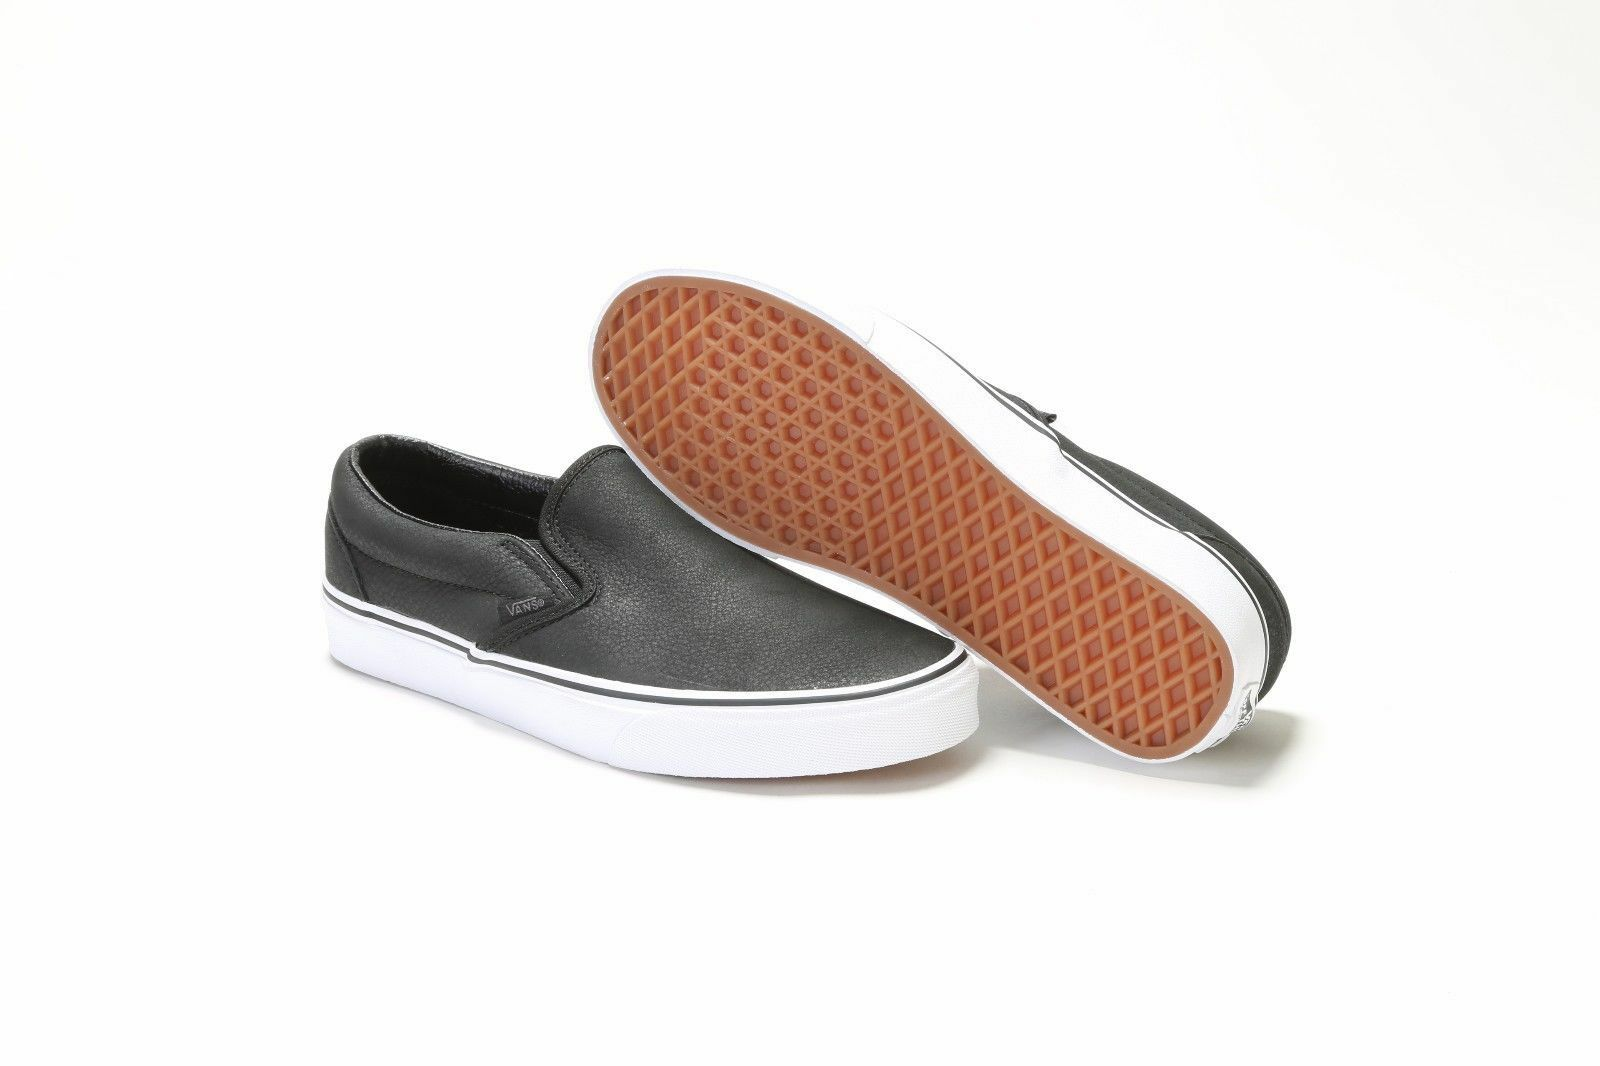 VANS CLASSIC SLIP-ON PREMIUM LEATHER BLACK TRUE WHITE Soft Suede